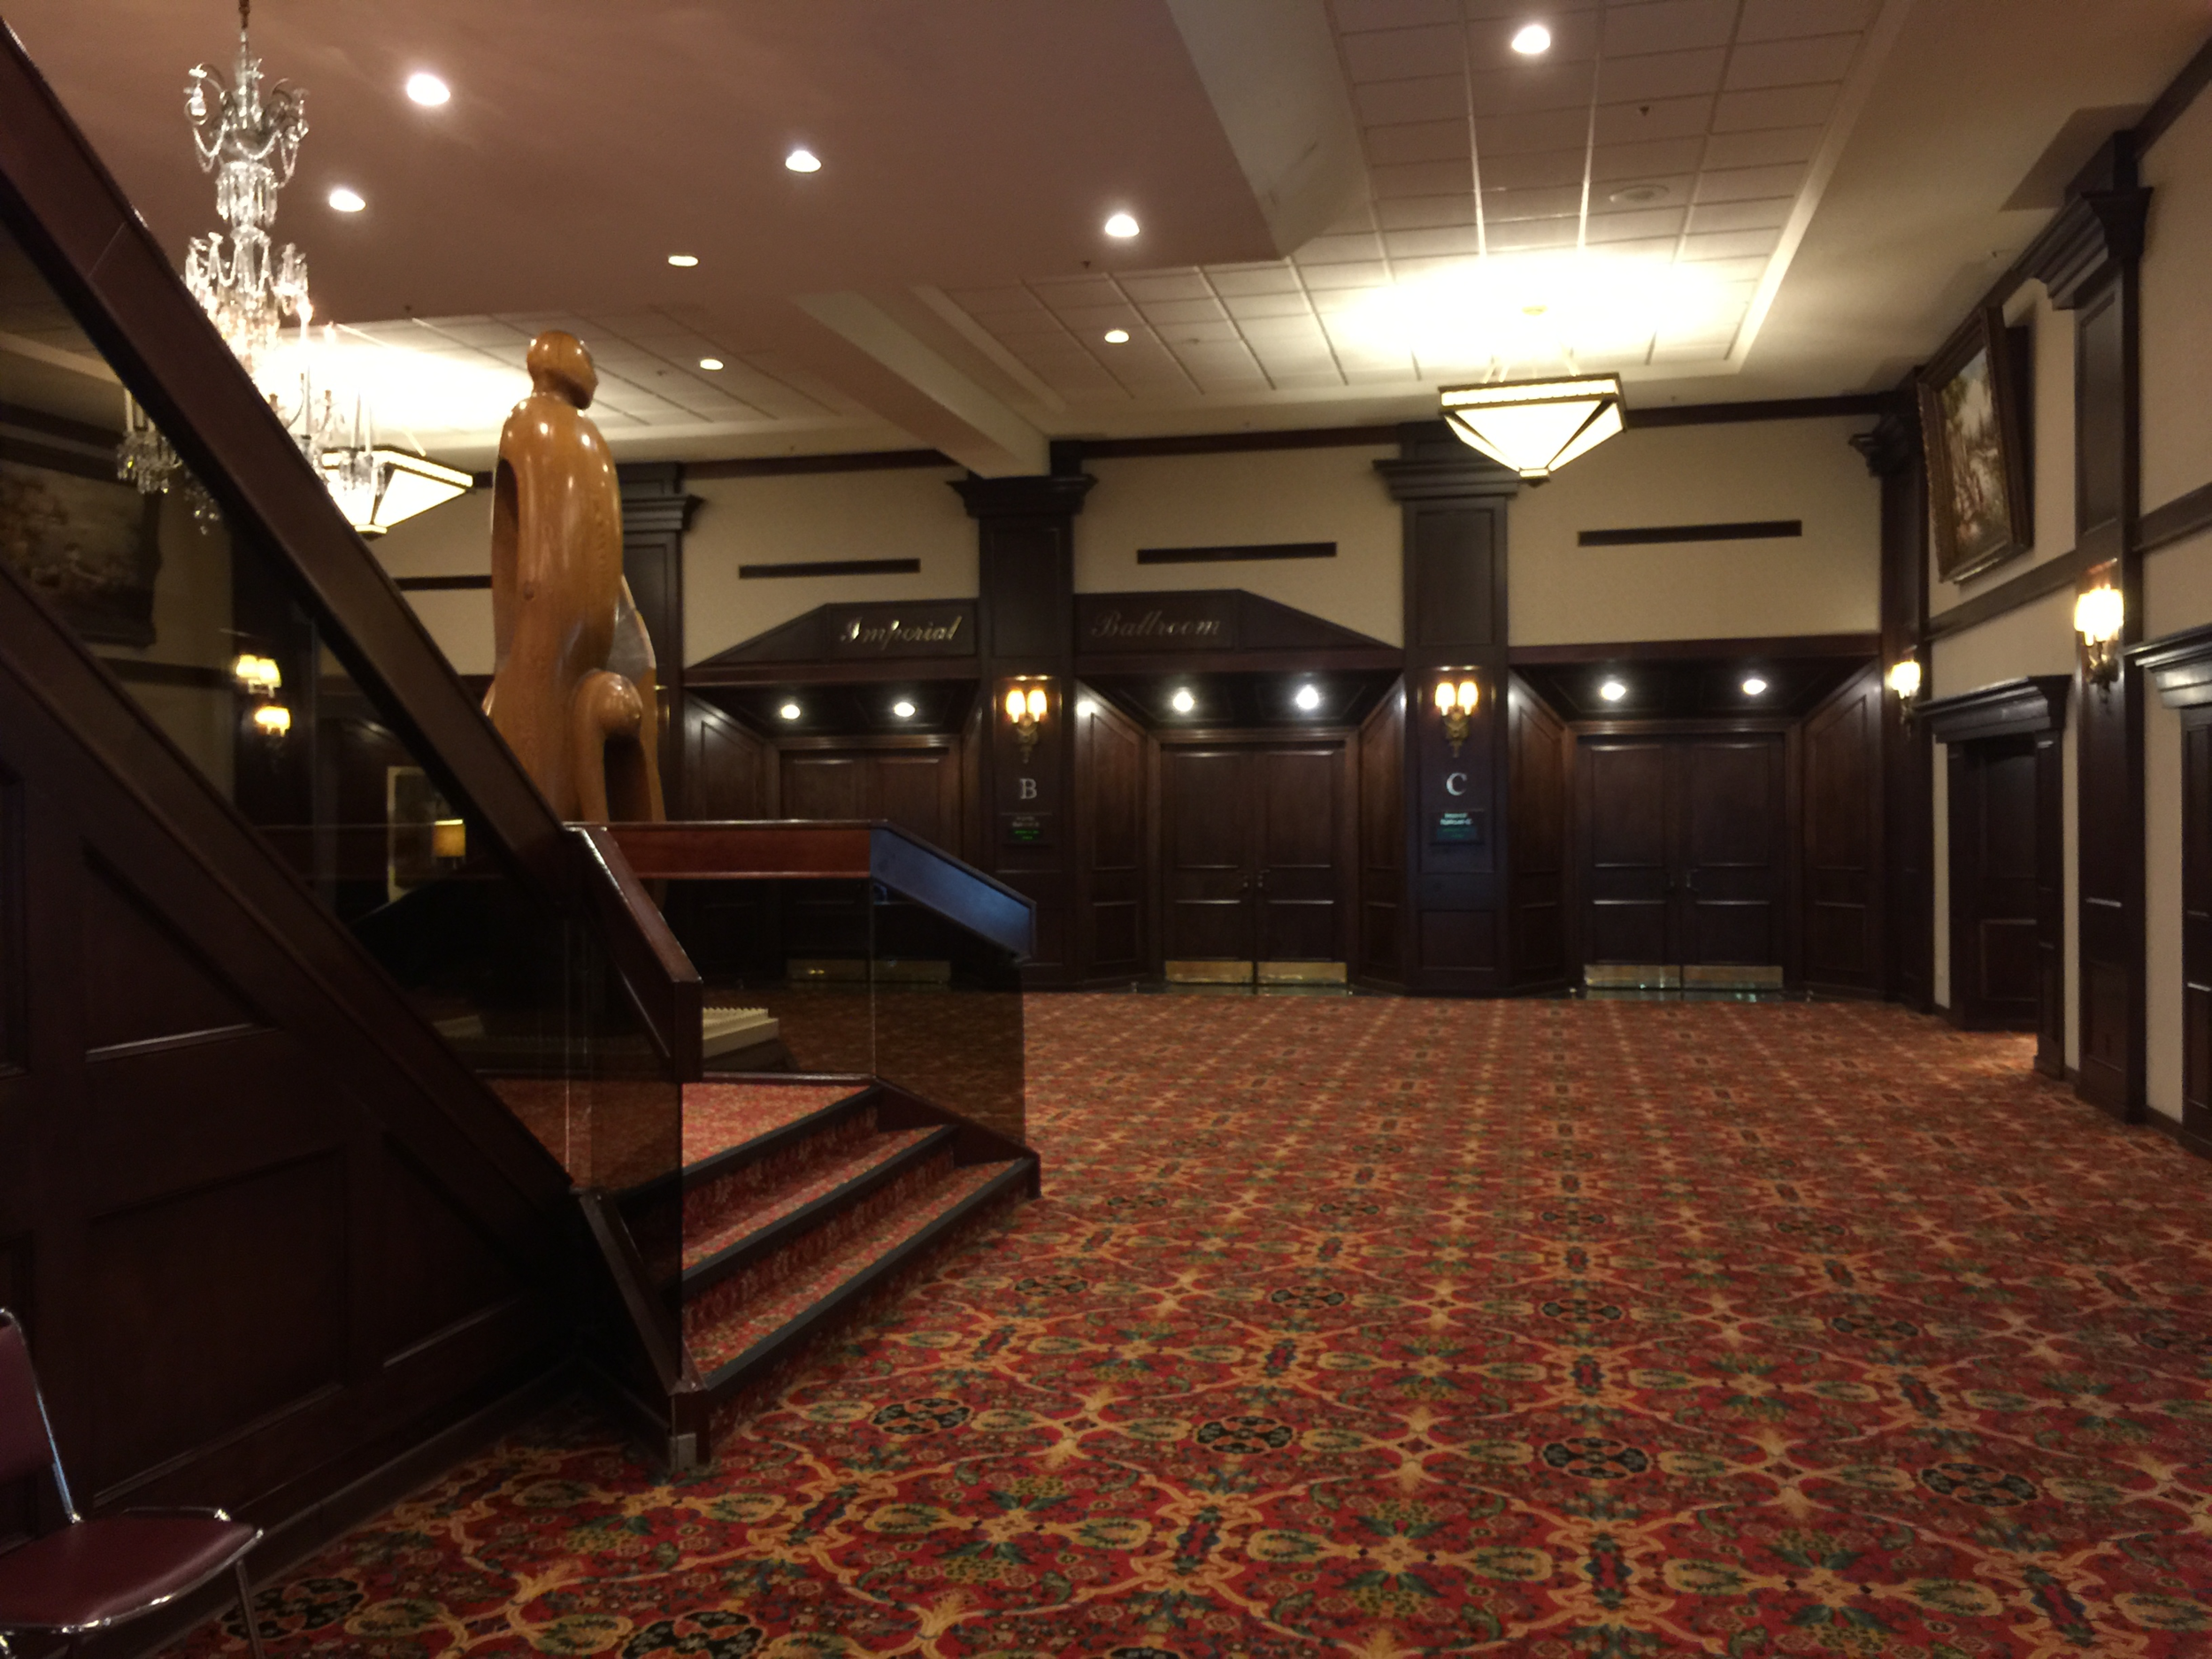 Entrance to one of the hotel meeting facilities